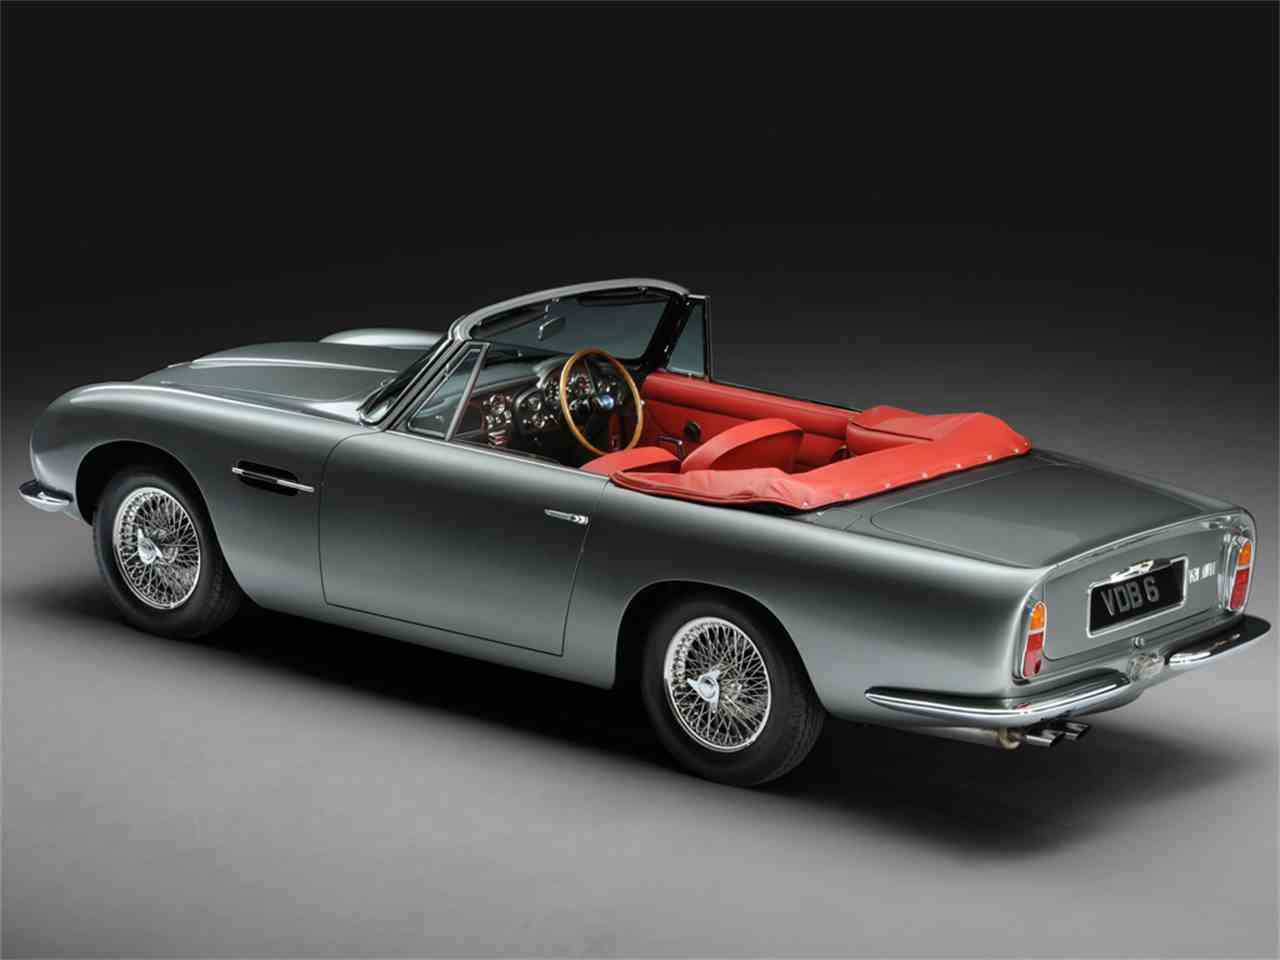 Large Picture of Classic '67 Aston Martin DB6 MKI Vantage Volante Offered by JD Classics LTD - IVCB